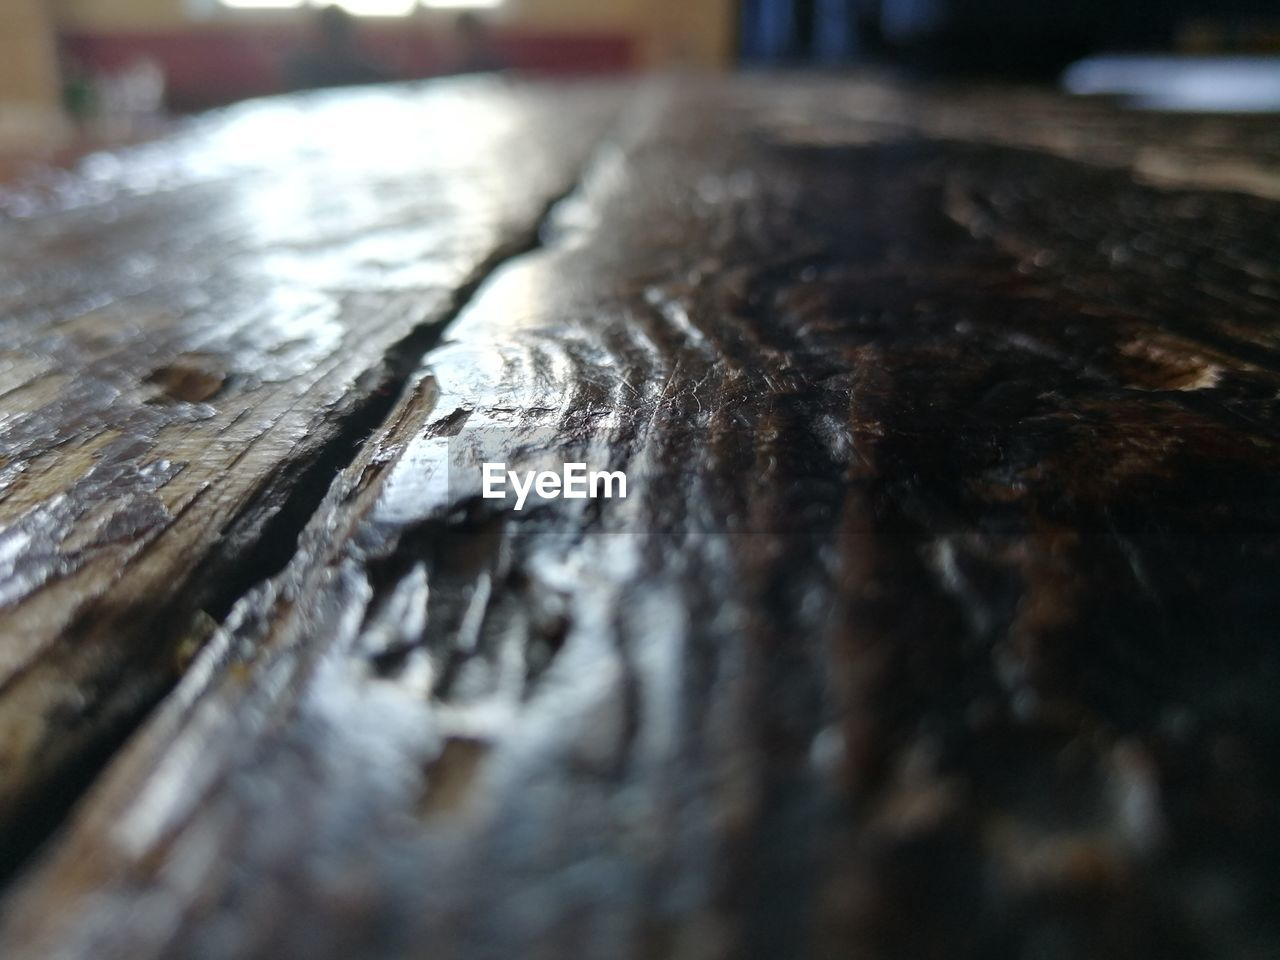 wood - material, selective focus, textured, close-up, no people, pattern, table, outdoors, wood, weathered, day, plank, rough, damaged, metal, old, still life, run-down, cracked, surface level, wood grain